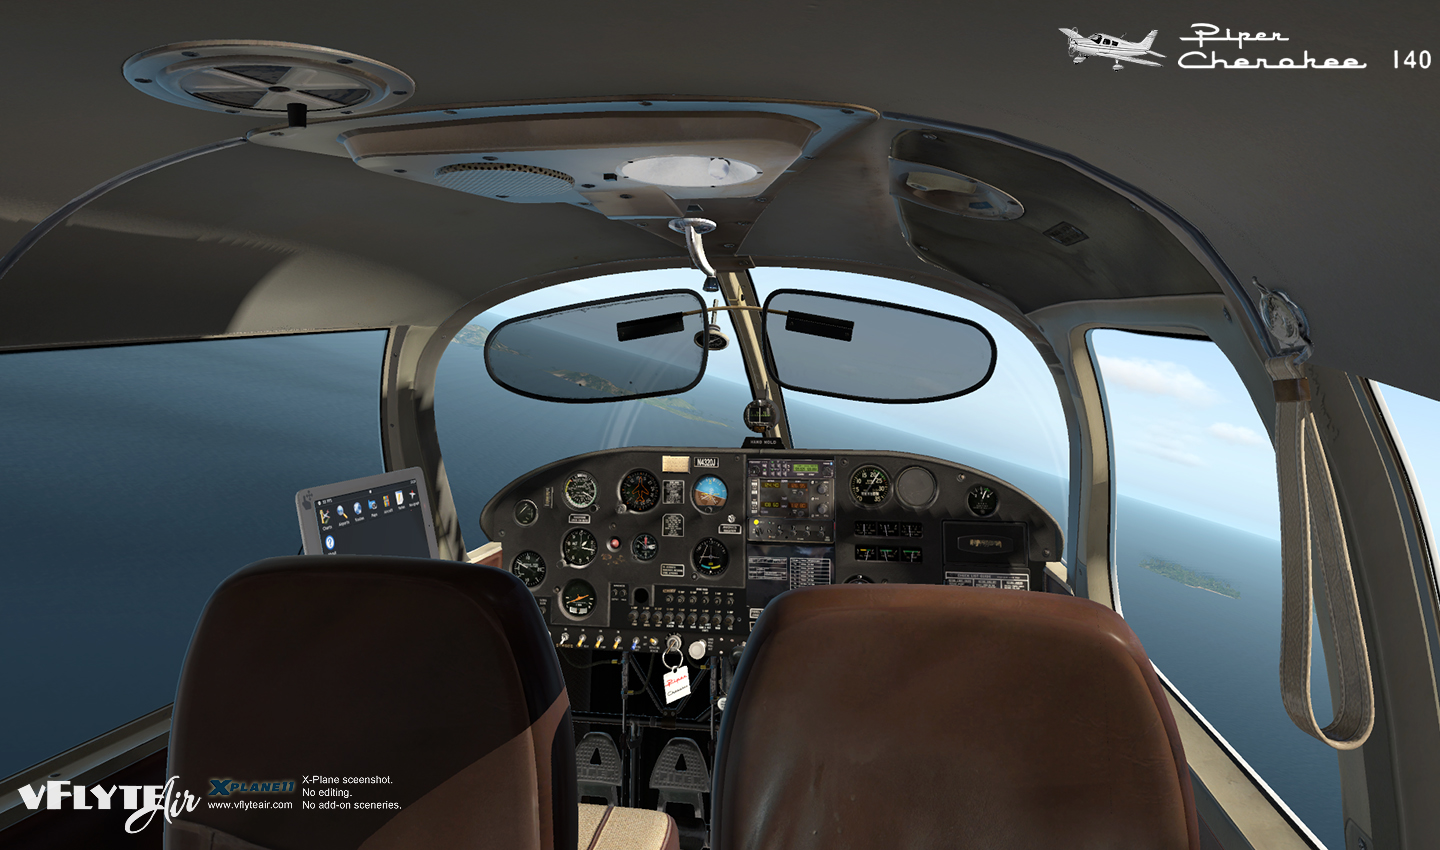 VFLYTEAIR SIMULATIONS INC - PIPER CHEROKEE 140 ORIGINAL X-PLANE 11.30+